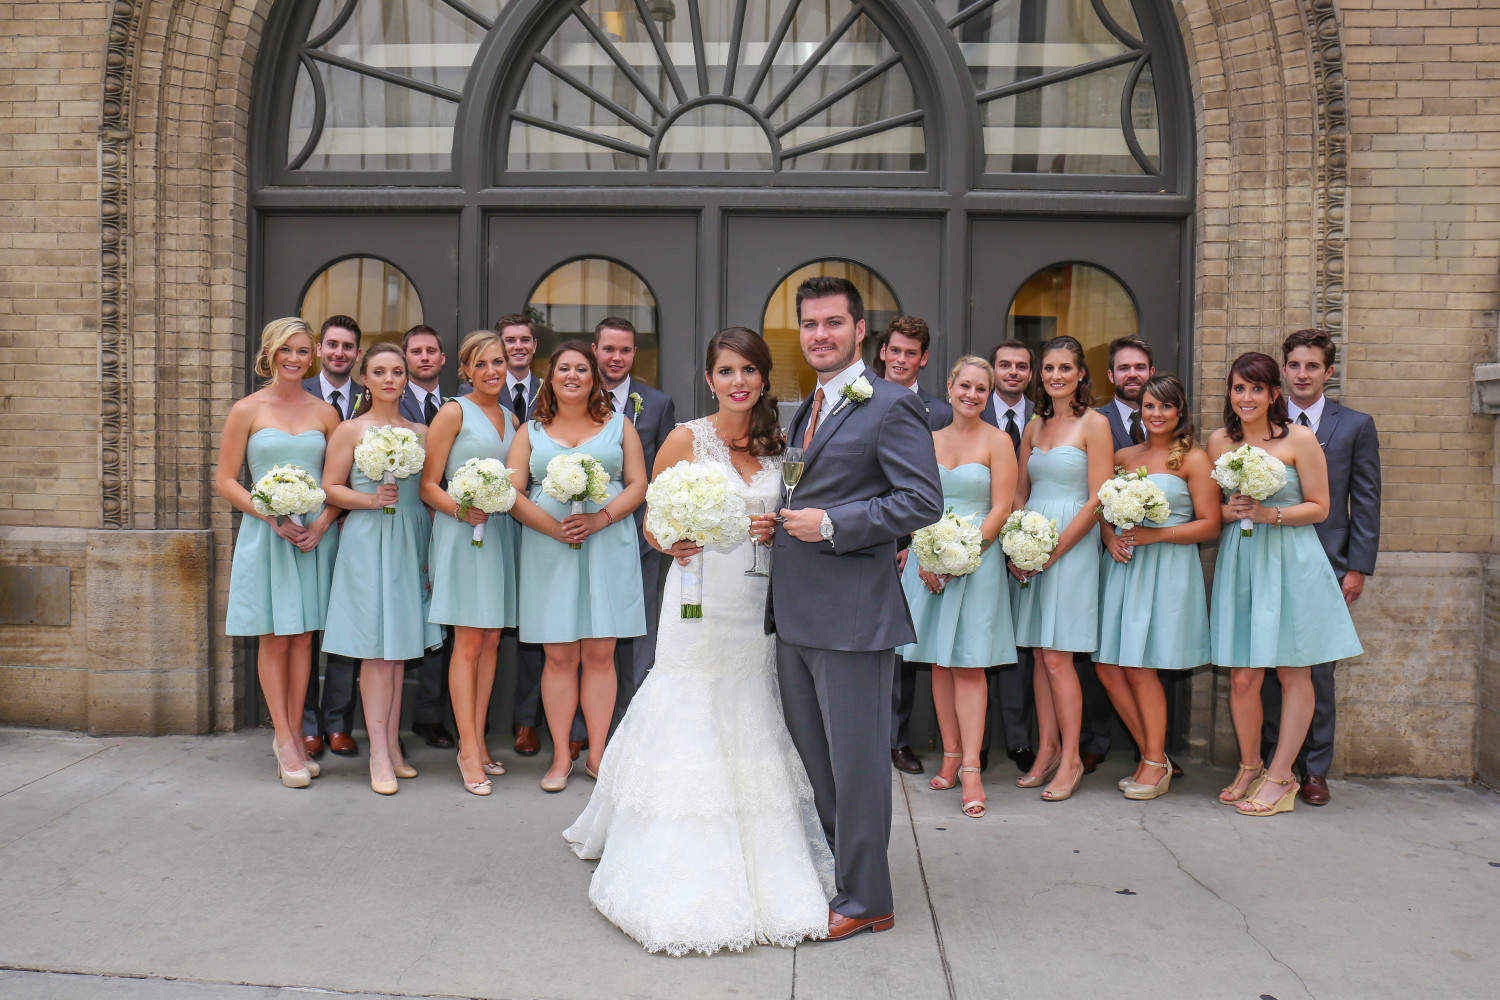 Bridal Party at the Ellie Caulkins Opera House www.aquinnphotography.om